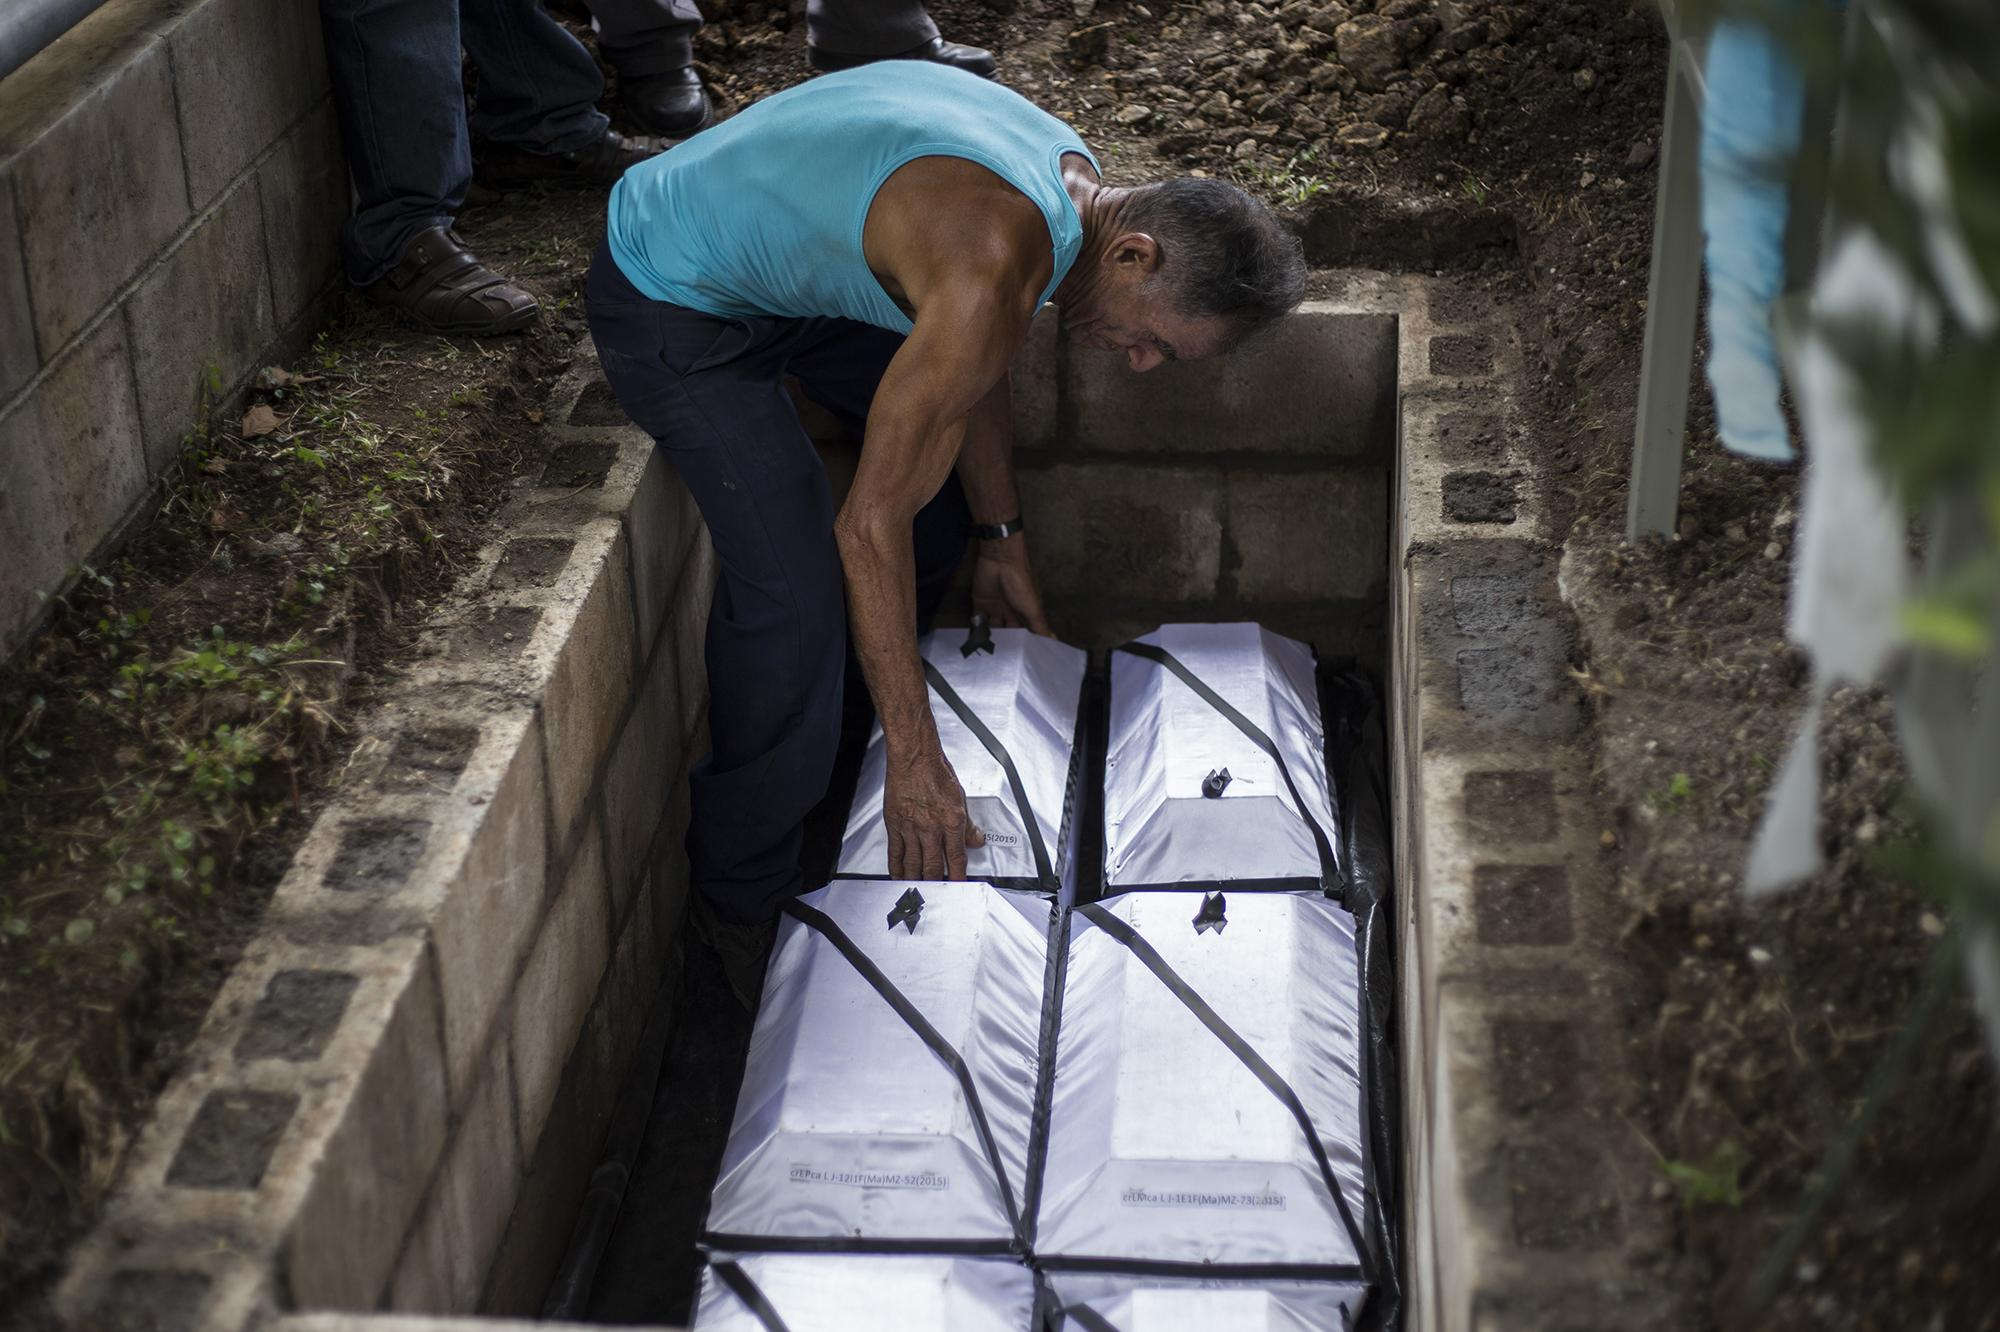 On December 11, 2017, José de Los Ángeles Mejía buried his children in the memorial plot in the canton of La Joya, three days after testifying in the Second Court of the First Instance in San Francisco Gotera. Photo: El Faro / Víctor Peña